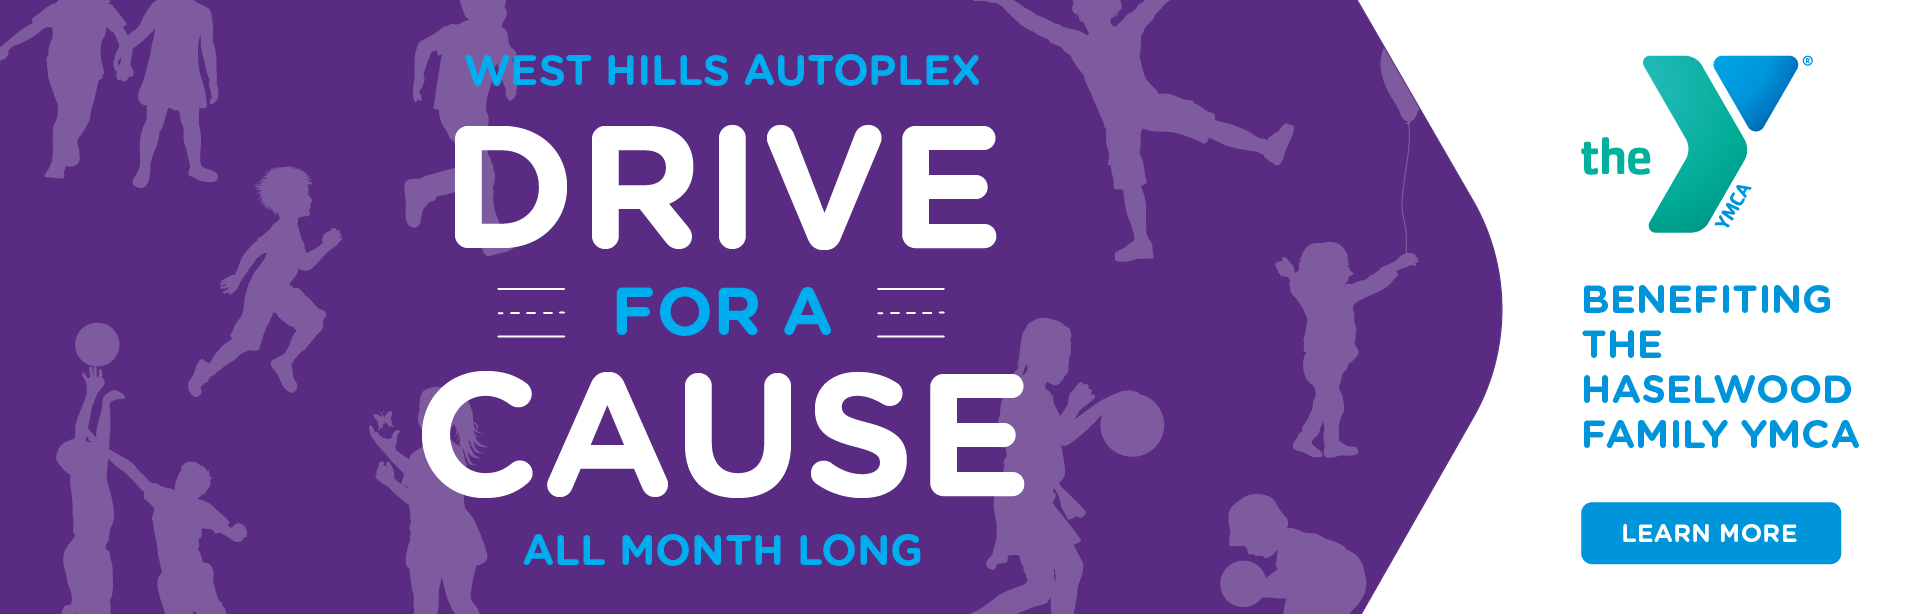 11636 – MAR21 – Drive for a Cause – YMCA – Webslides_1920x614